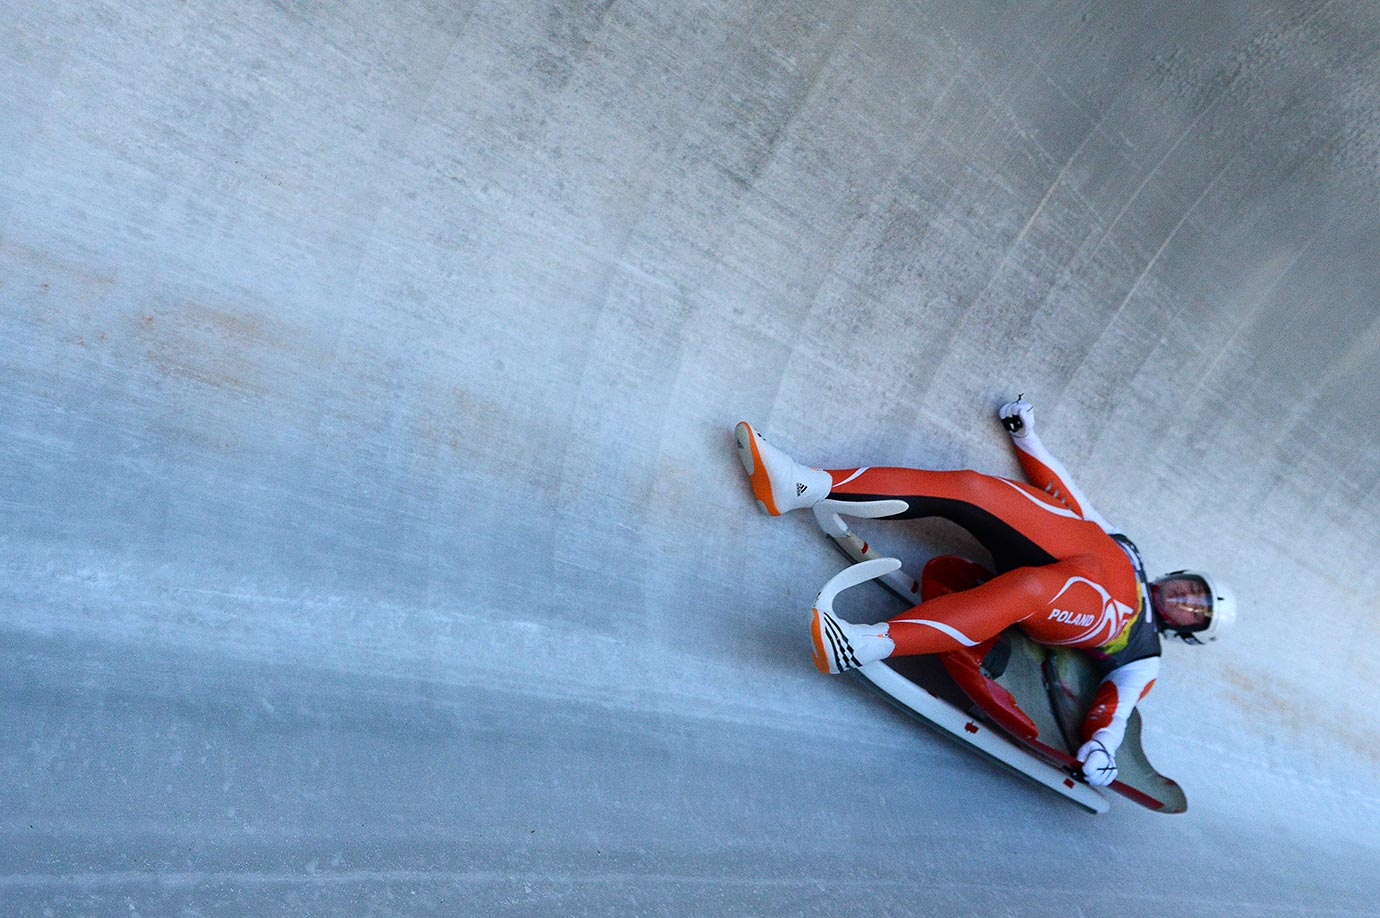 Kacper Tarnawski (POL) falls in the Men's Luge Singles at the Lillehammer Olympic Sliding Center on Feb. 14, 2016 during the Winter Youth Olympic Games in Lillehammer, Norway.